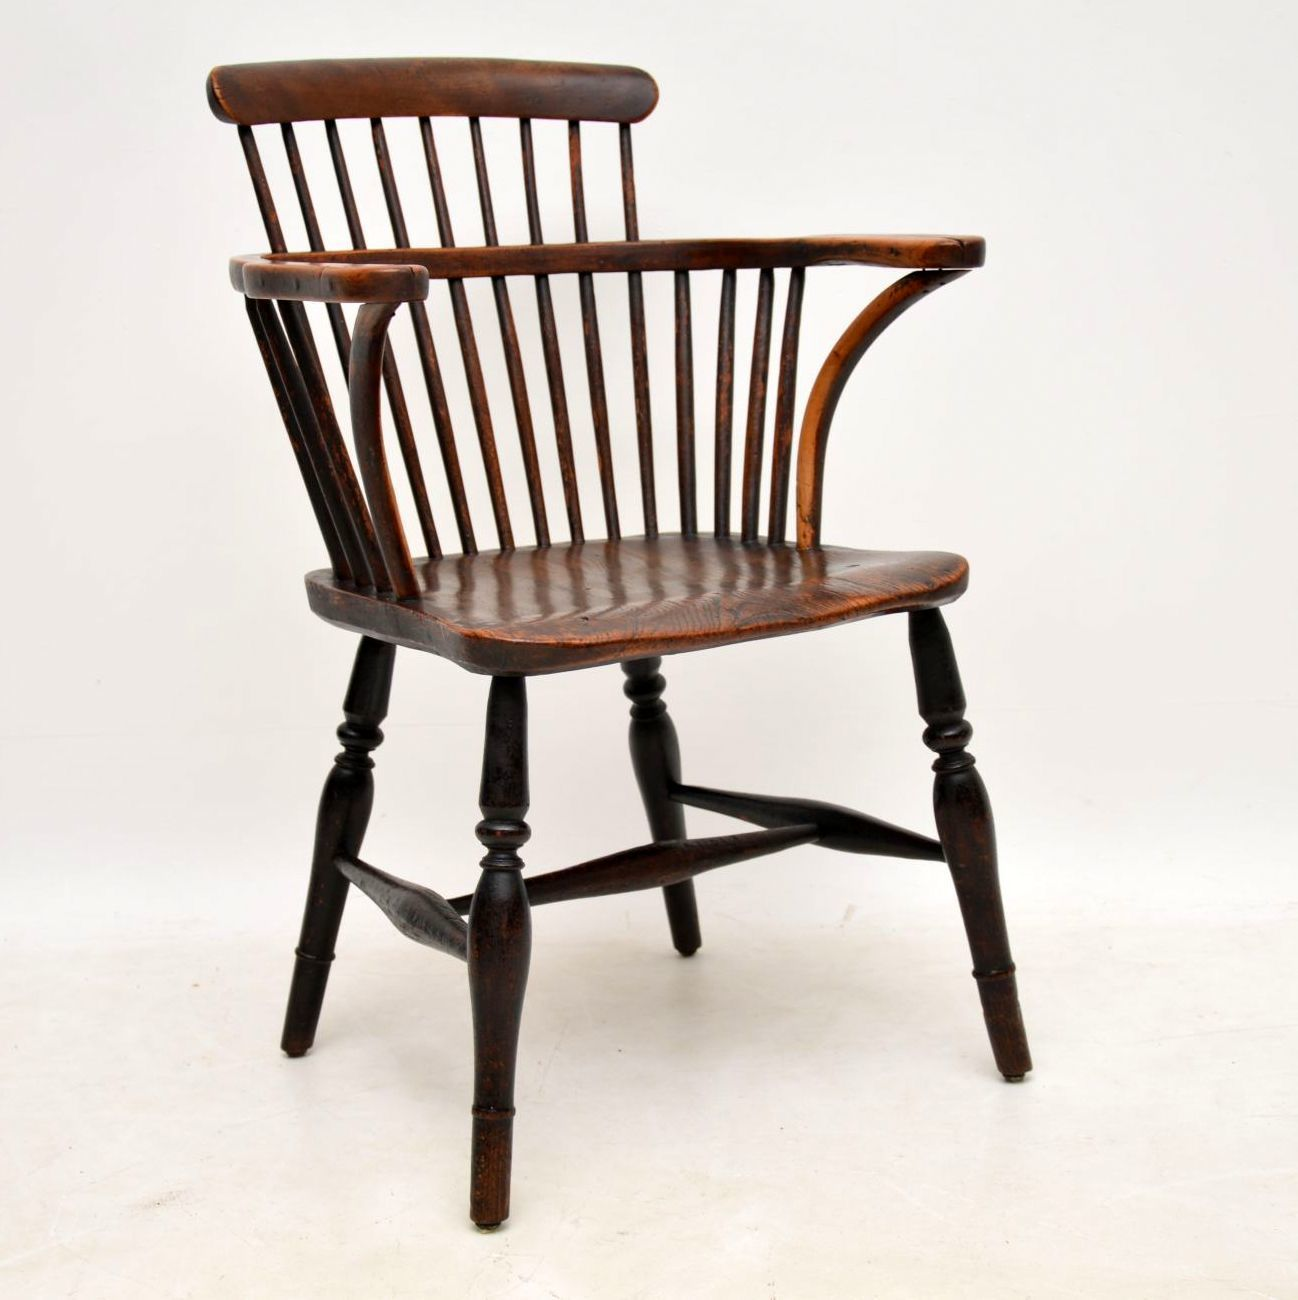 Antique Elm Spindle Back Windsor Chair Chair Upholstery Fabric For Chairs Oversized Chair Ottoman